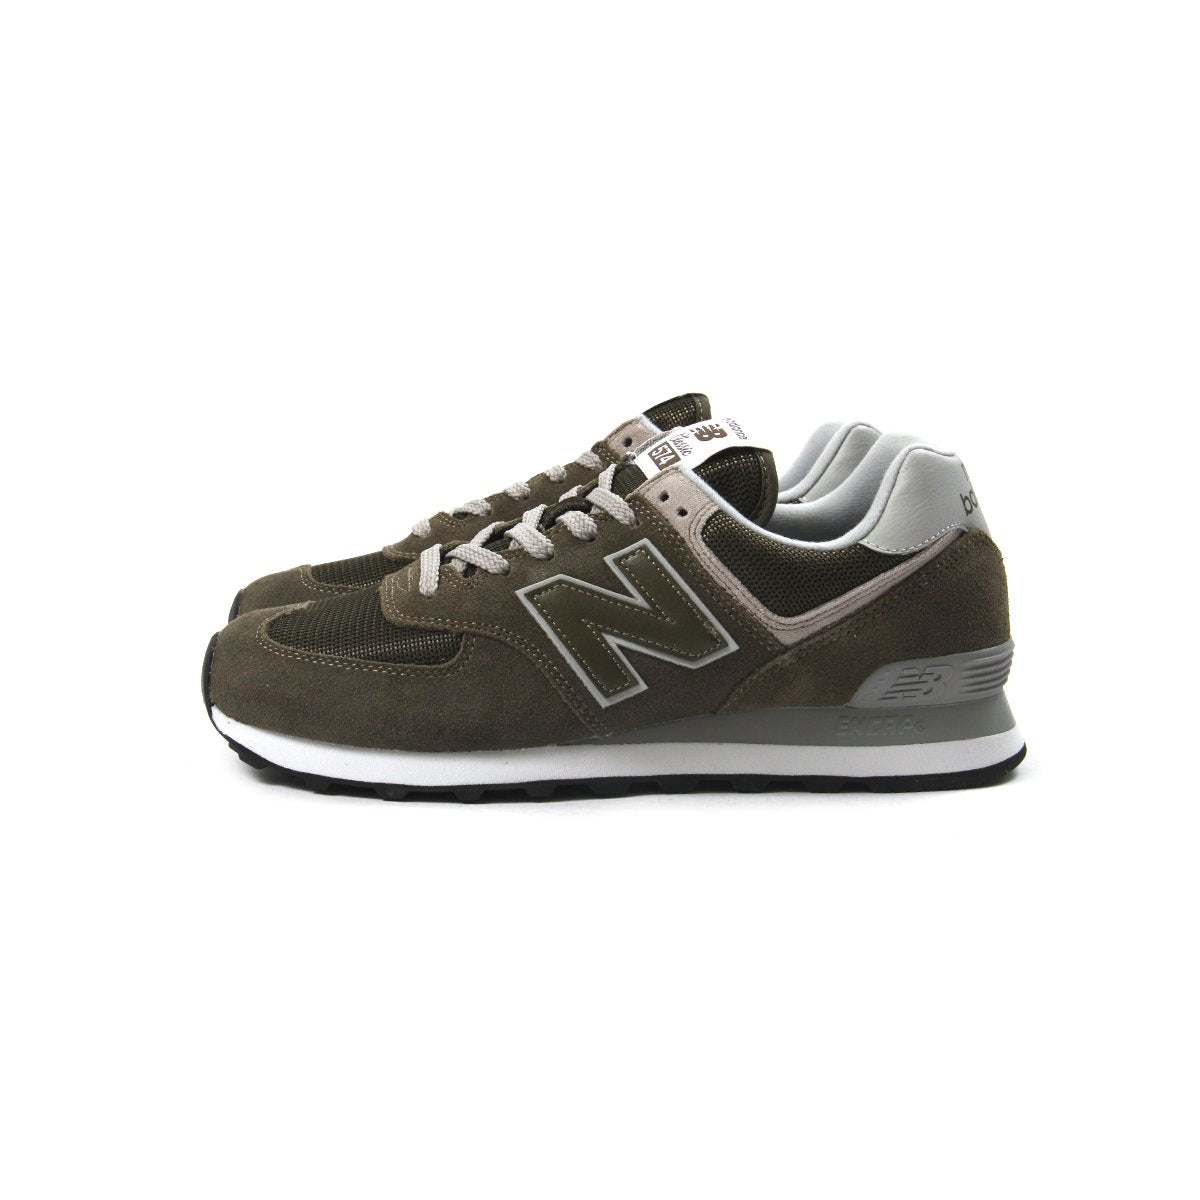 los angeles b4566 5cb43 ConceptsIntl | New Balance ML574EGO (Olive/Grey)